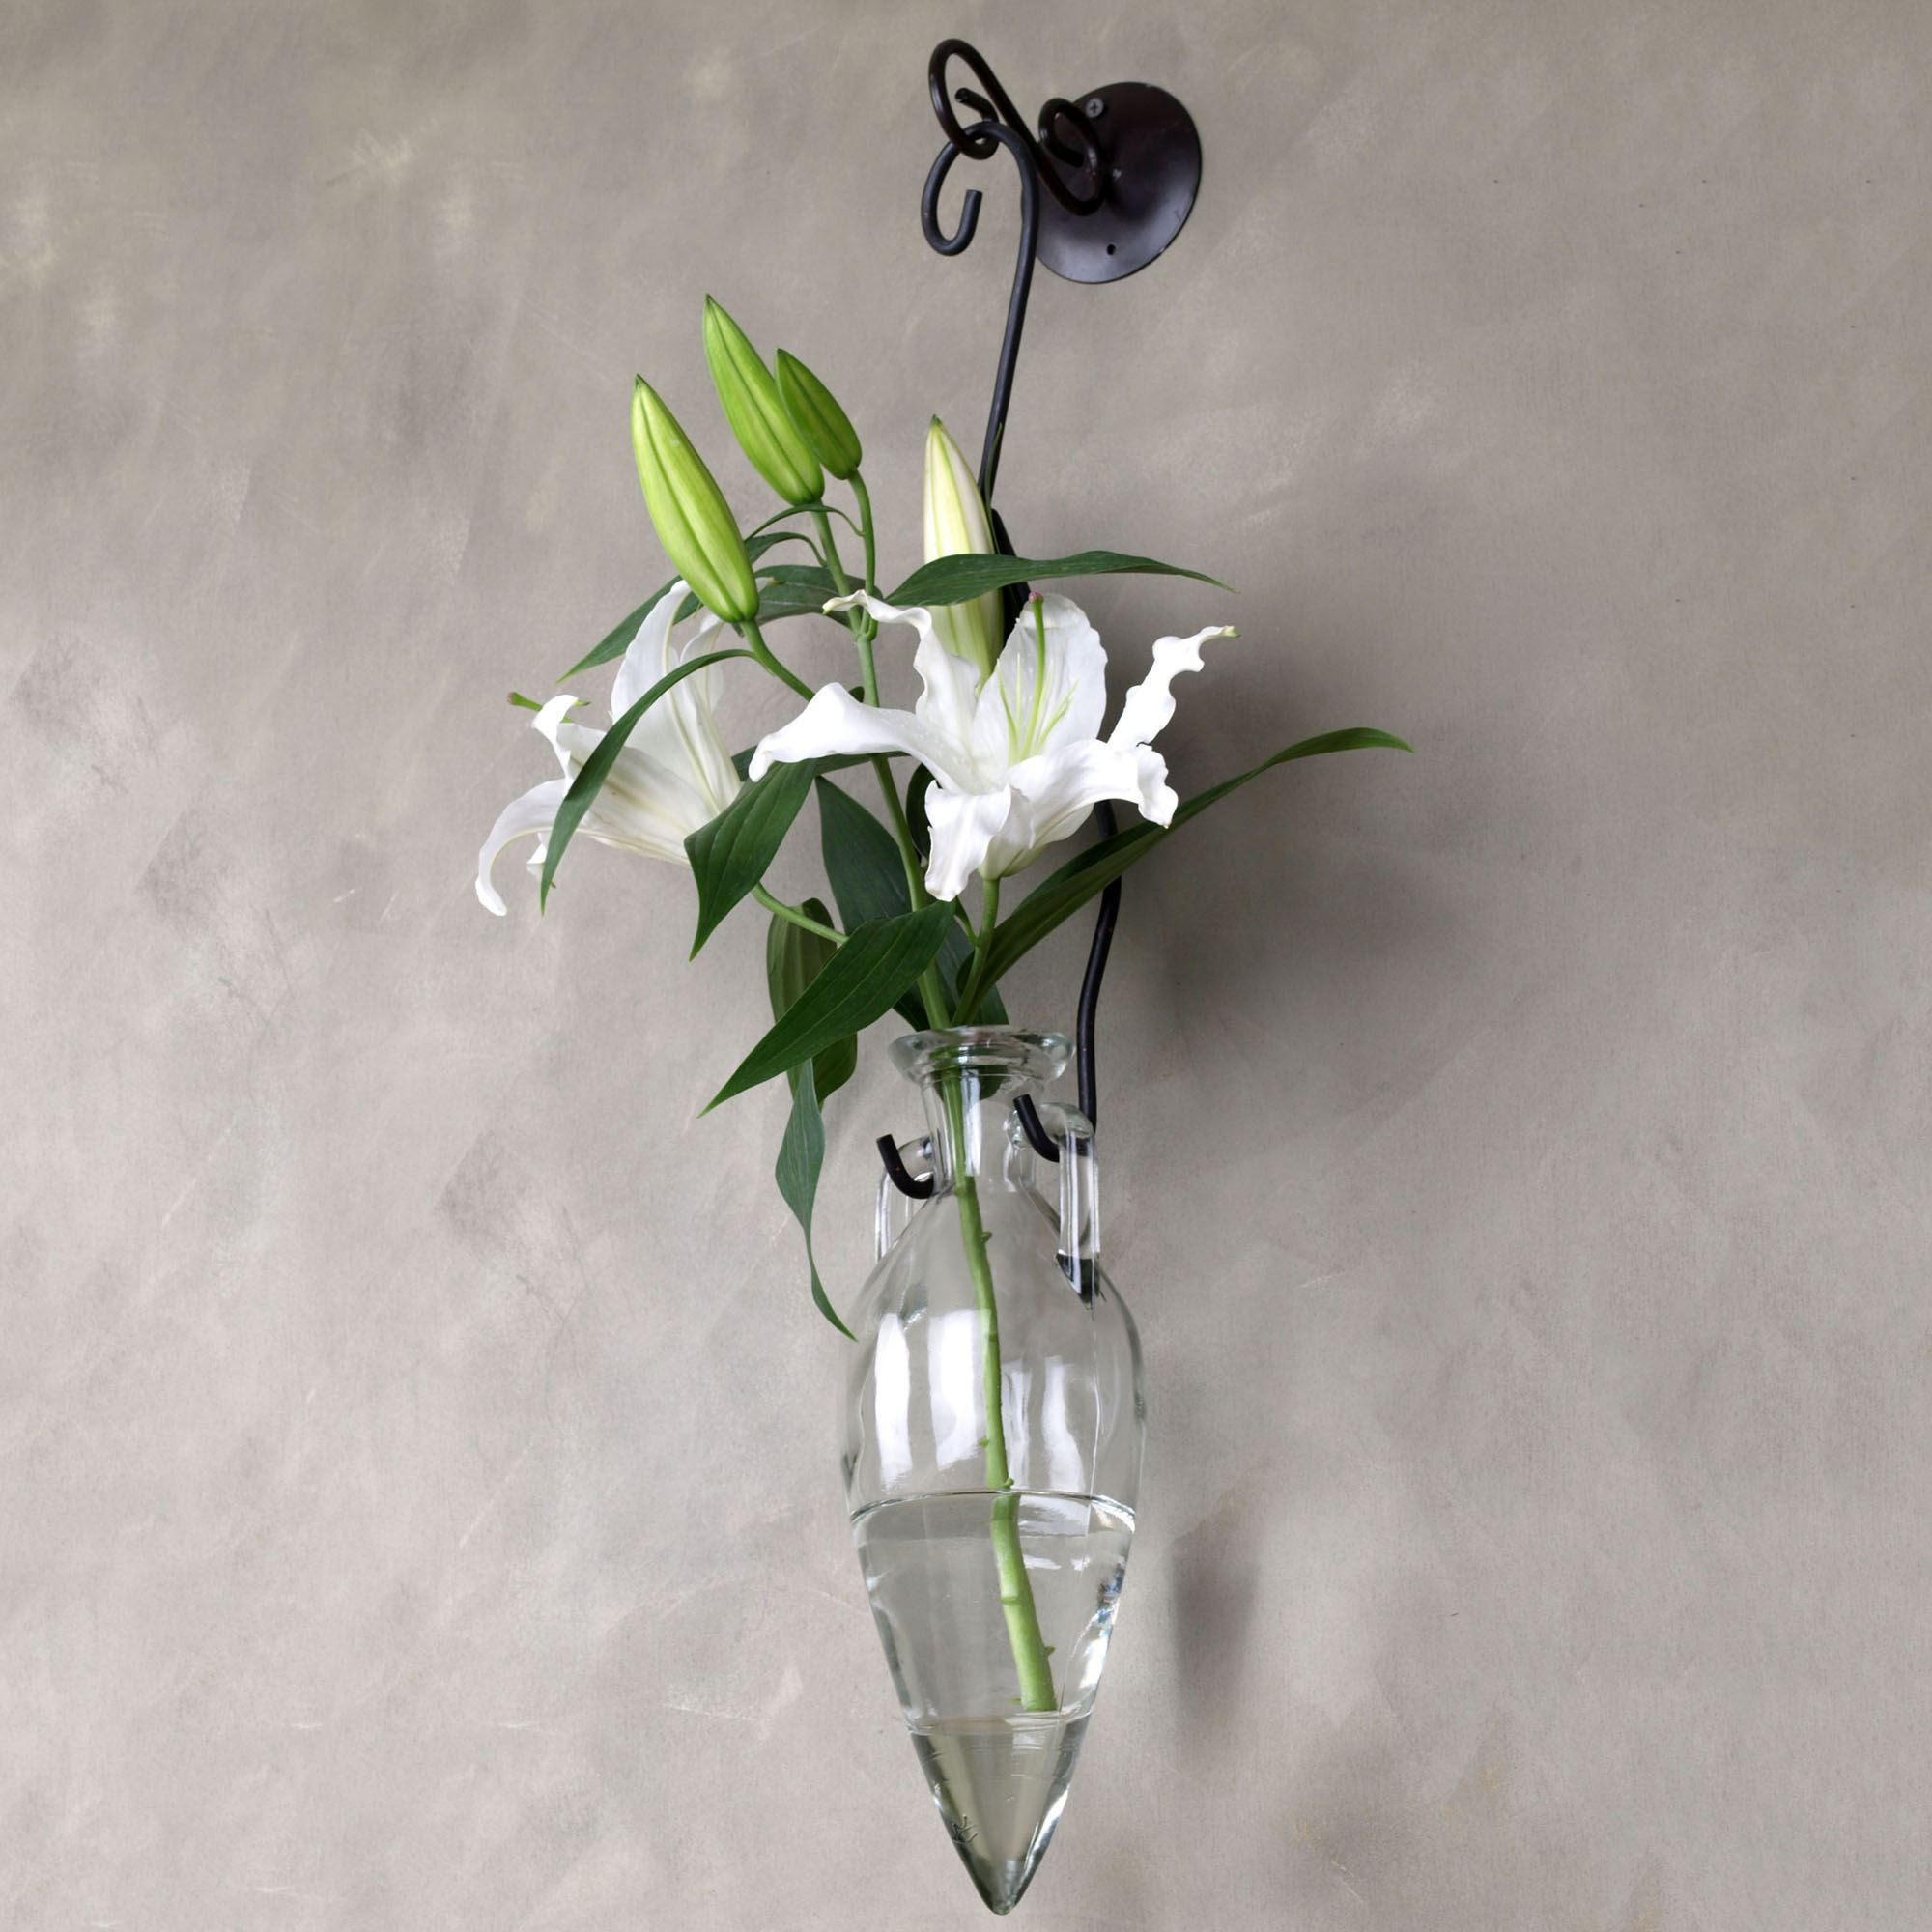 contemporary art glass vases of collection of hanging glass vases wall vases artificial plants in hanging glass vases wall gallery h vases wall hanging flower vase newspaper i 0d scheme wall